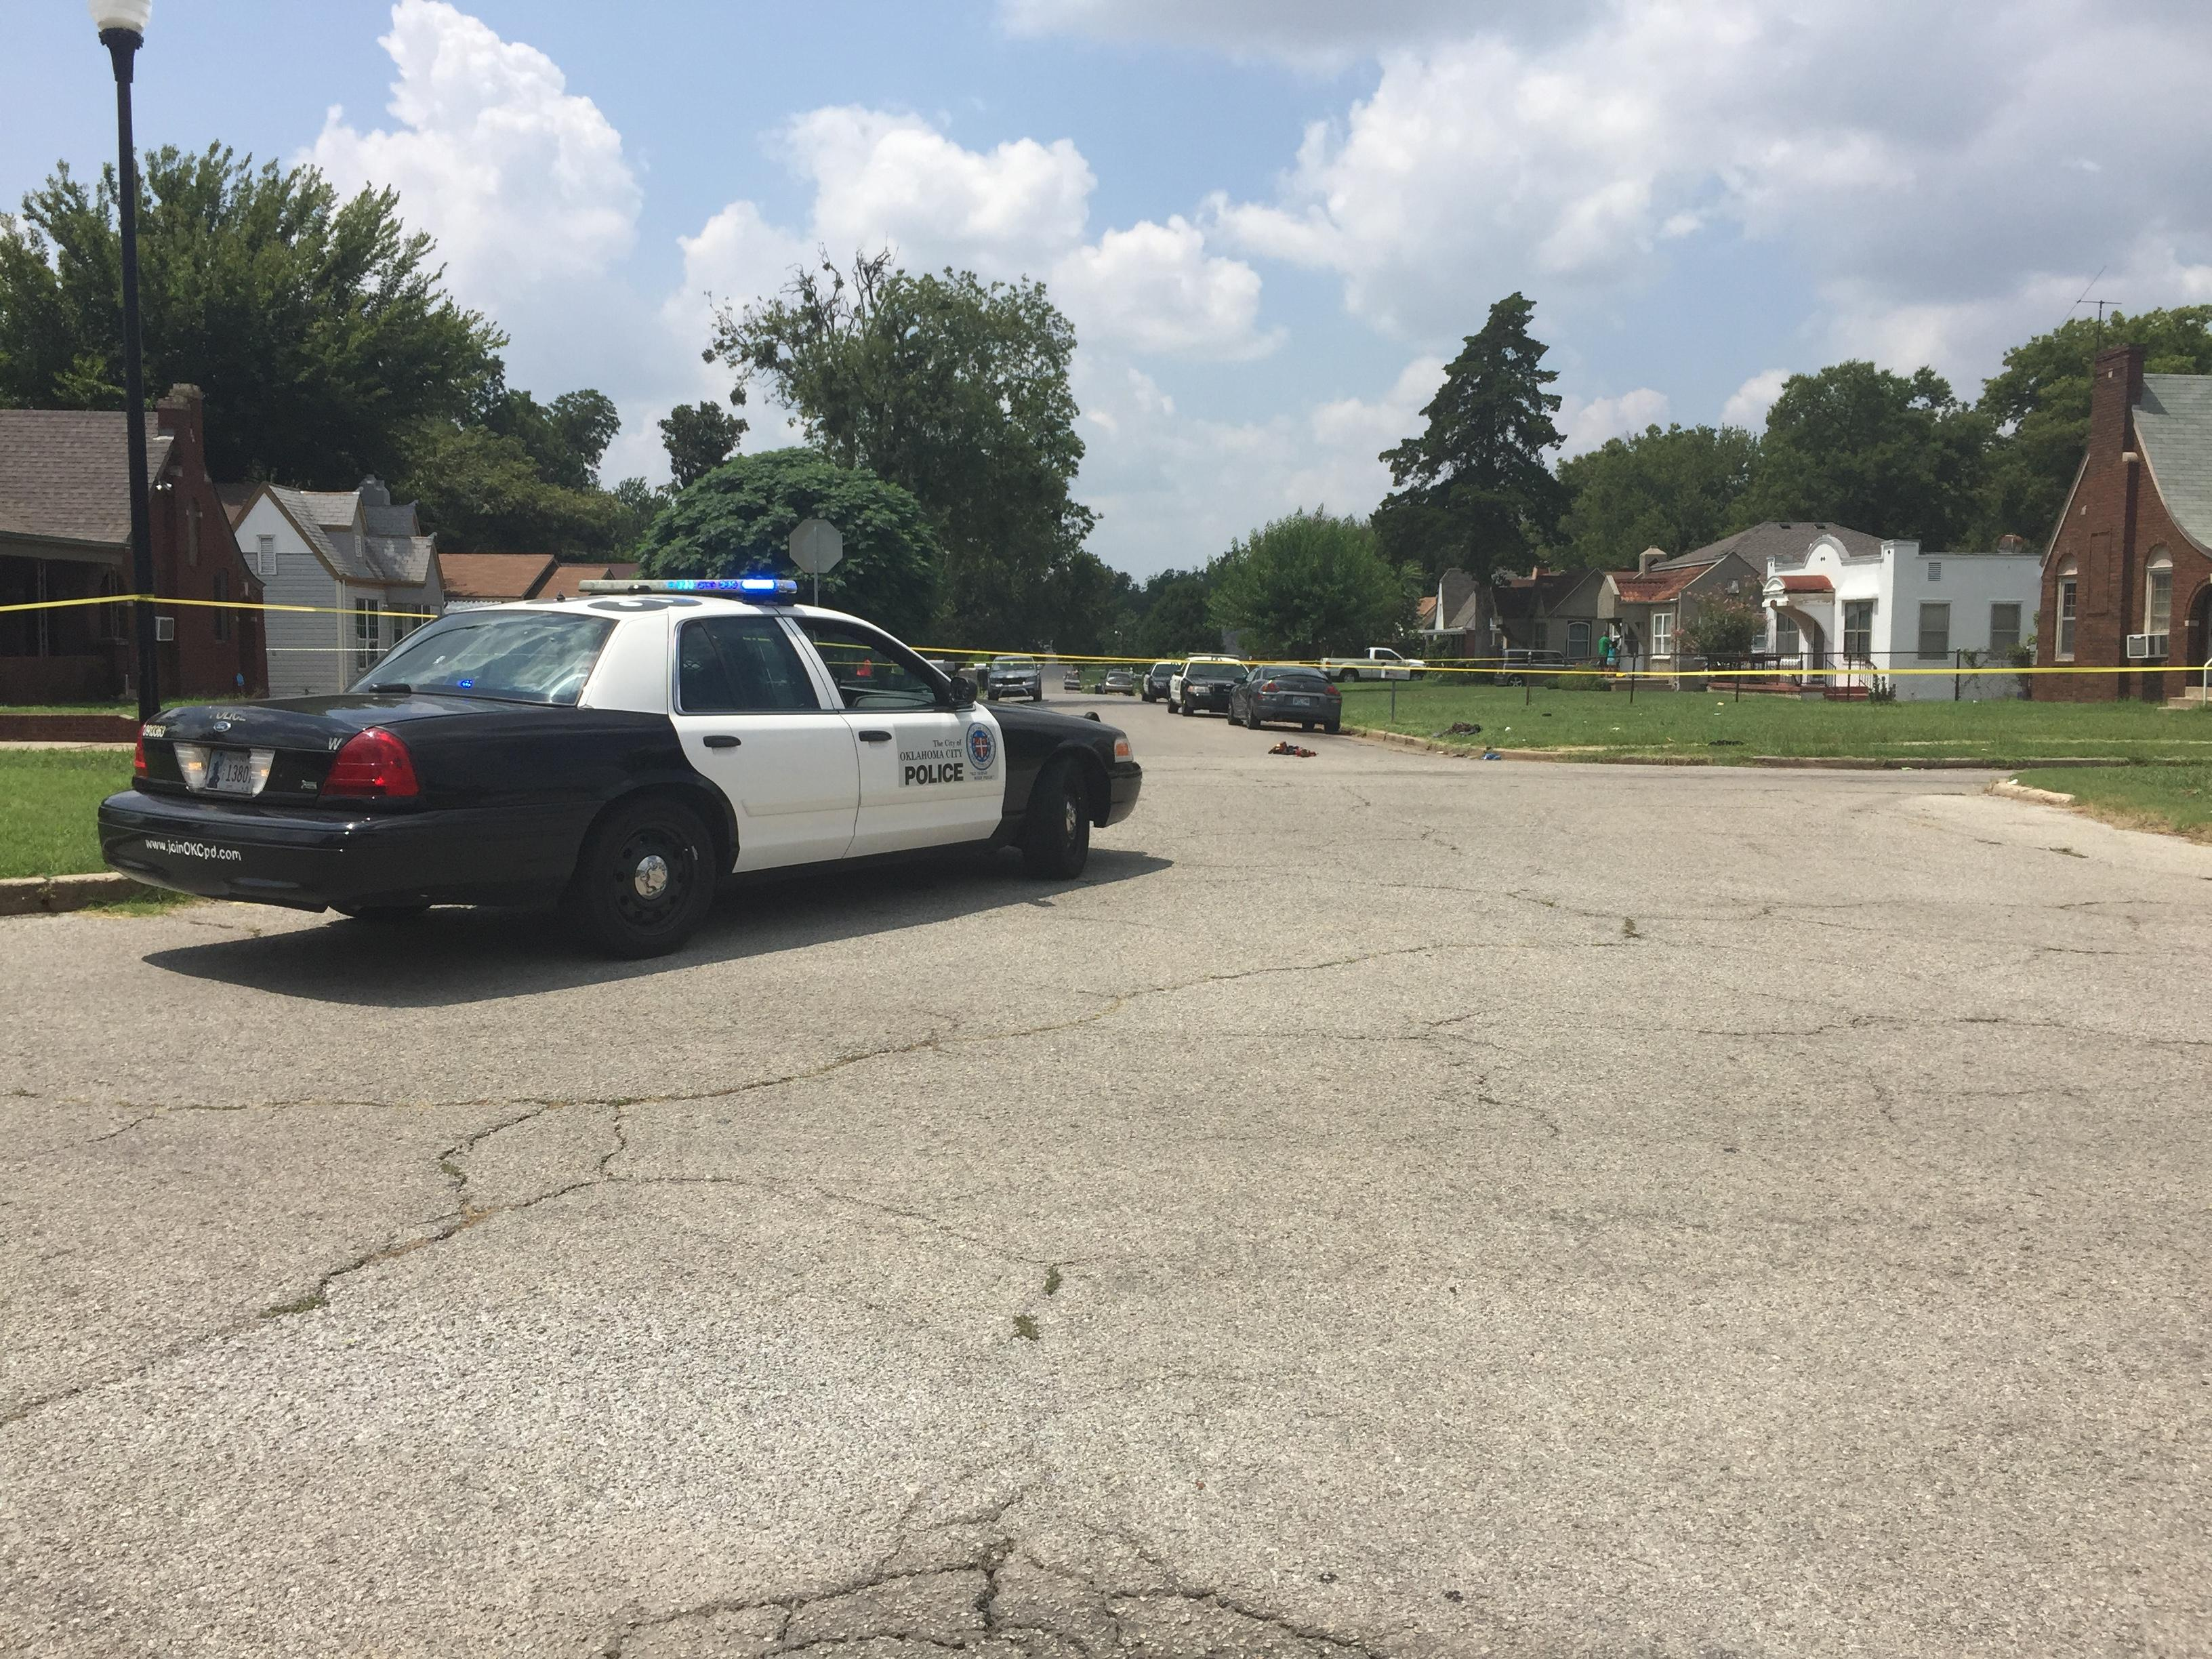 Police investigate a shooting August 9 near NW 12 and Youngs. (KOKH/Anthony West)